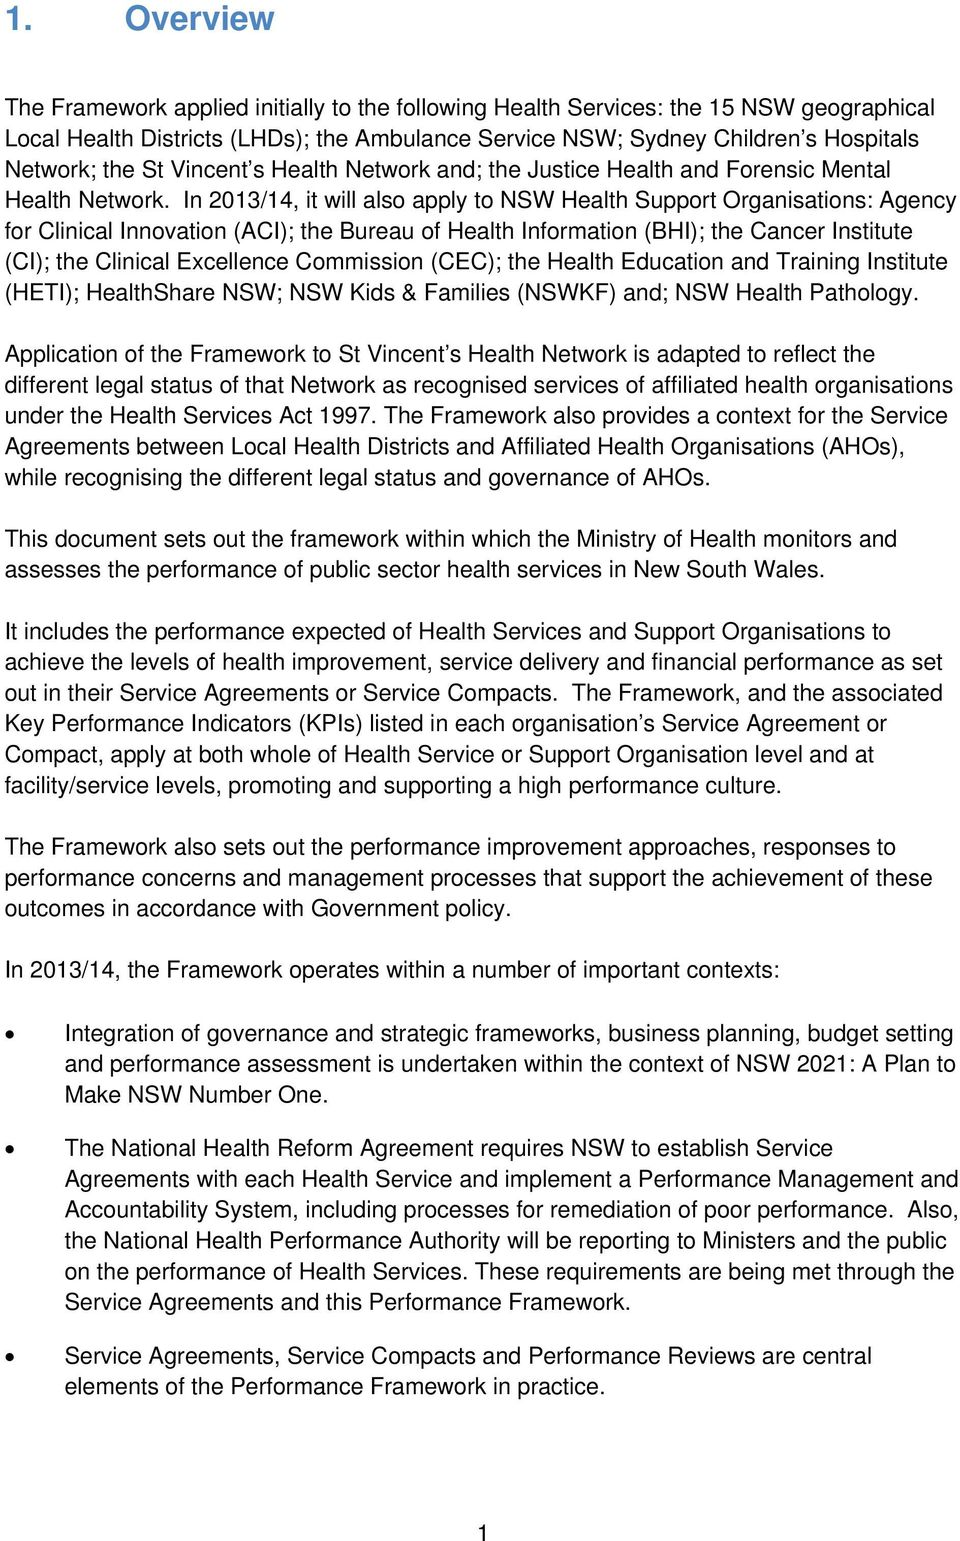 In 2013/14, it will also apply to NSW Health Support Organisations: Agency for Clinical Innovation (ACI); the Bureau of Health Information (BHI); the Cancer Institute (CI); the Clinical Excellence